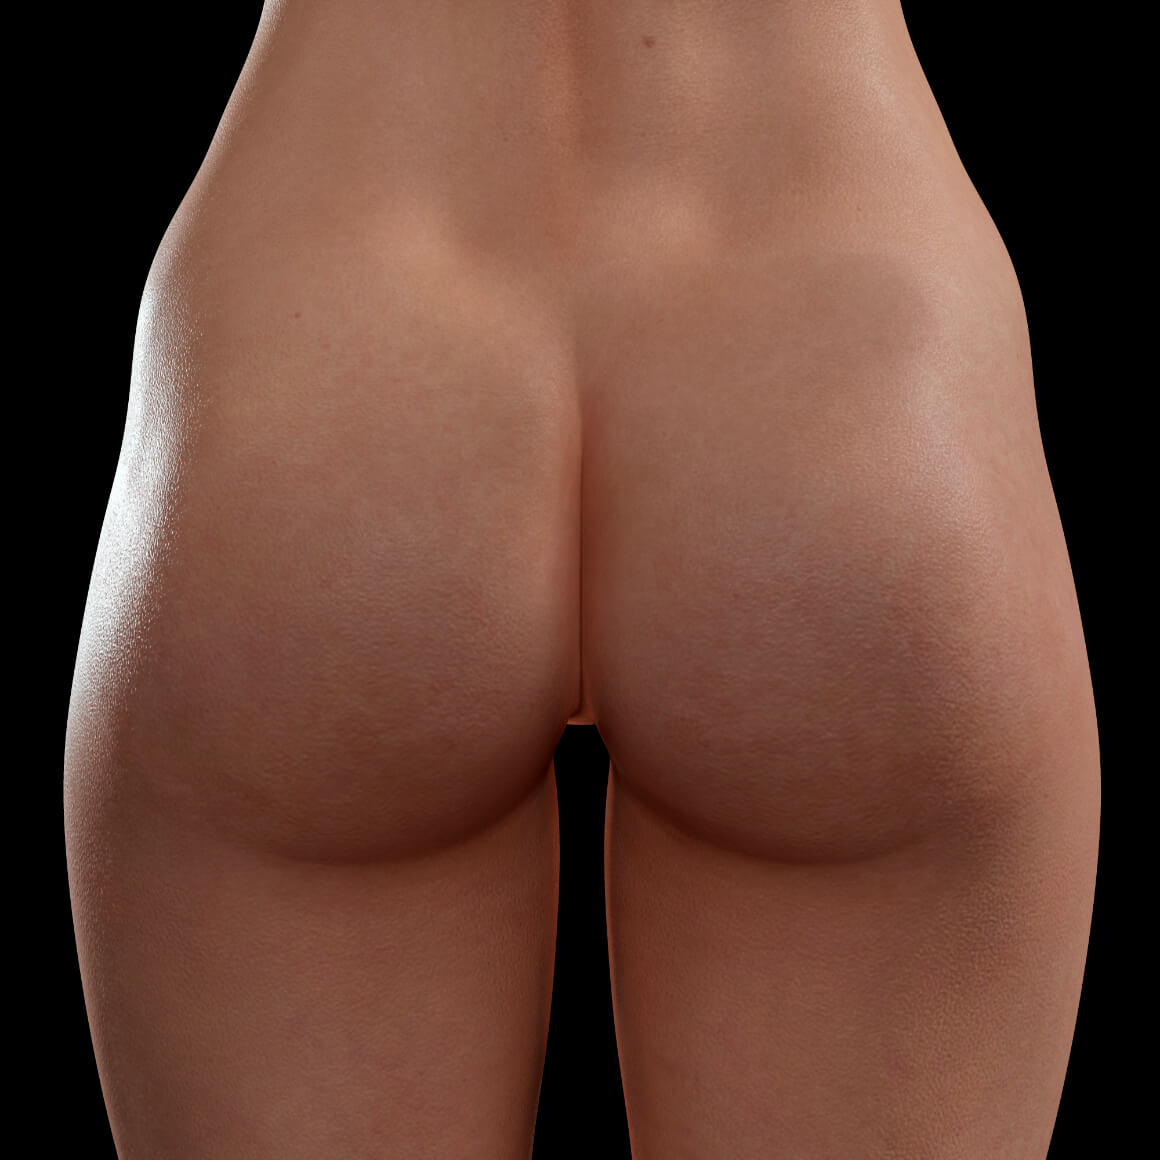 Back of a female patient from Clinique Chloé after a non-surgical butt lift treatment with Sculptra injections